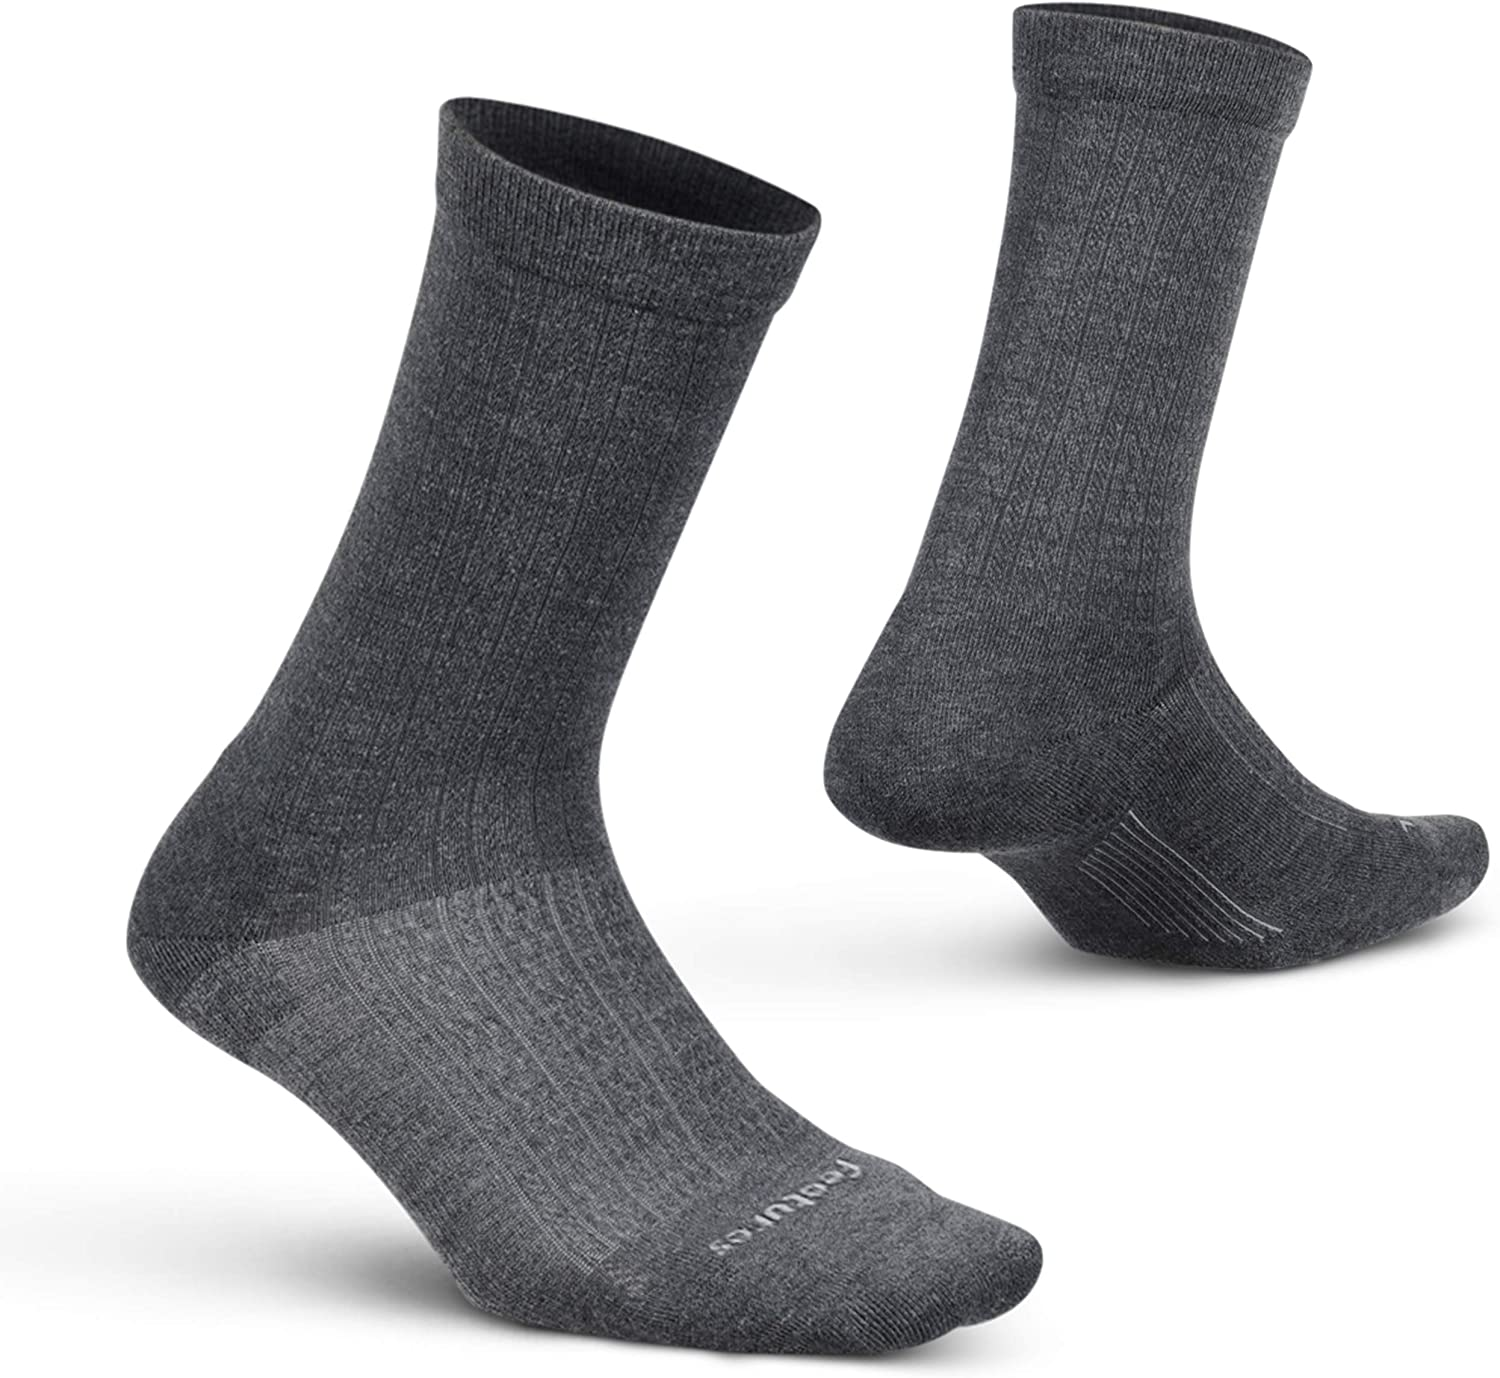 Feetures Everyday Women's Texture Cushion Crew- Targeted Compression Socks, Moisture Wicking